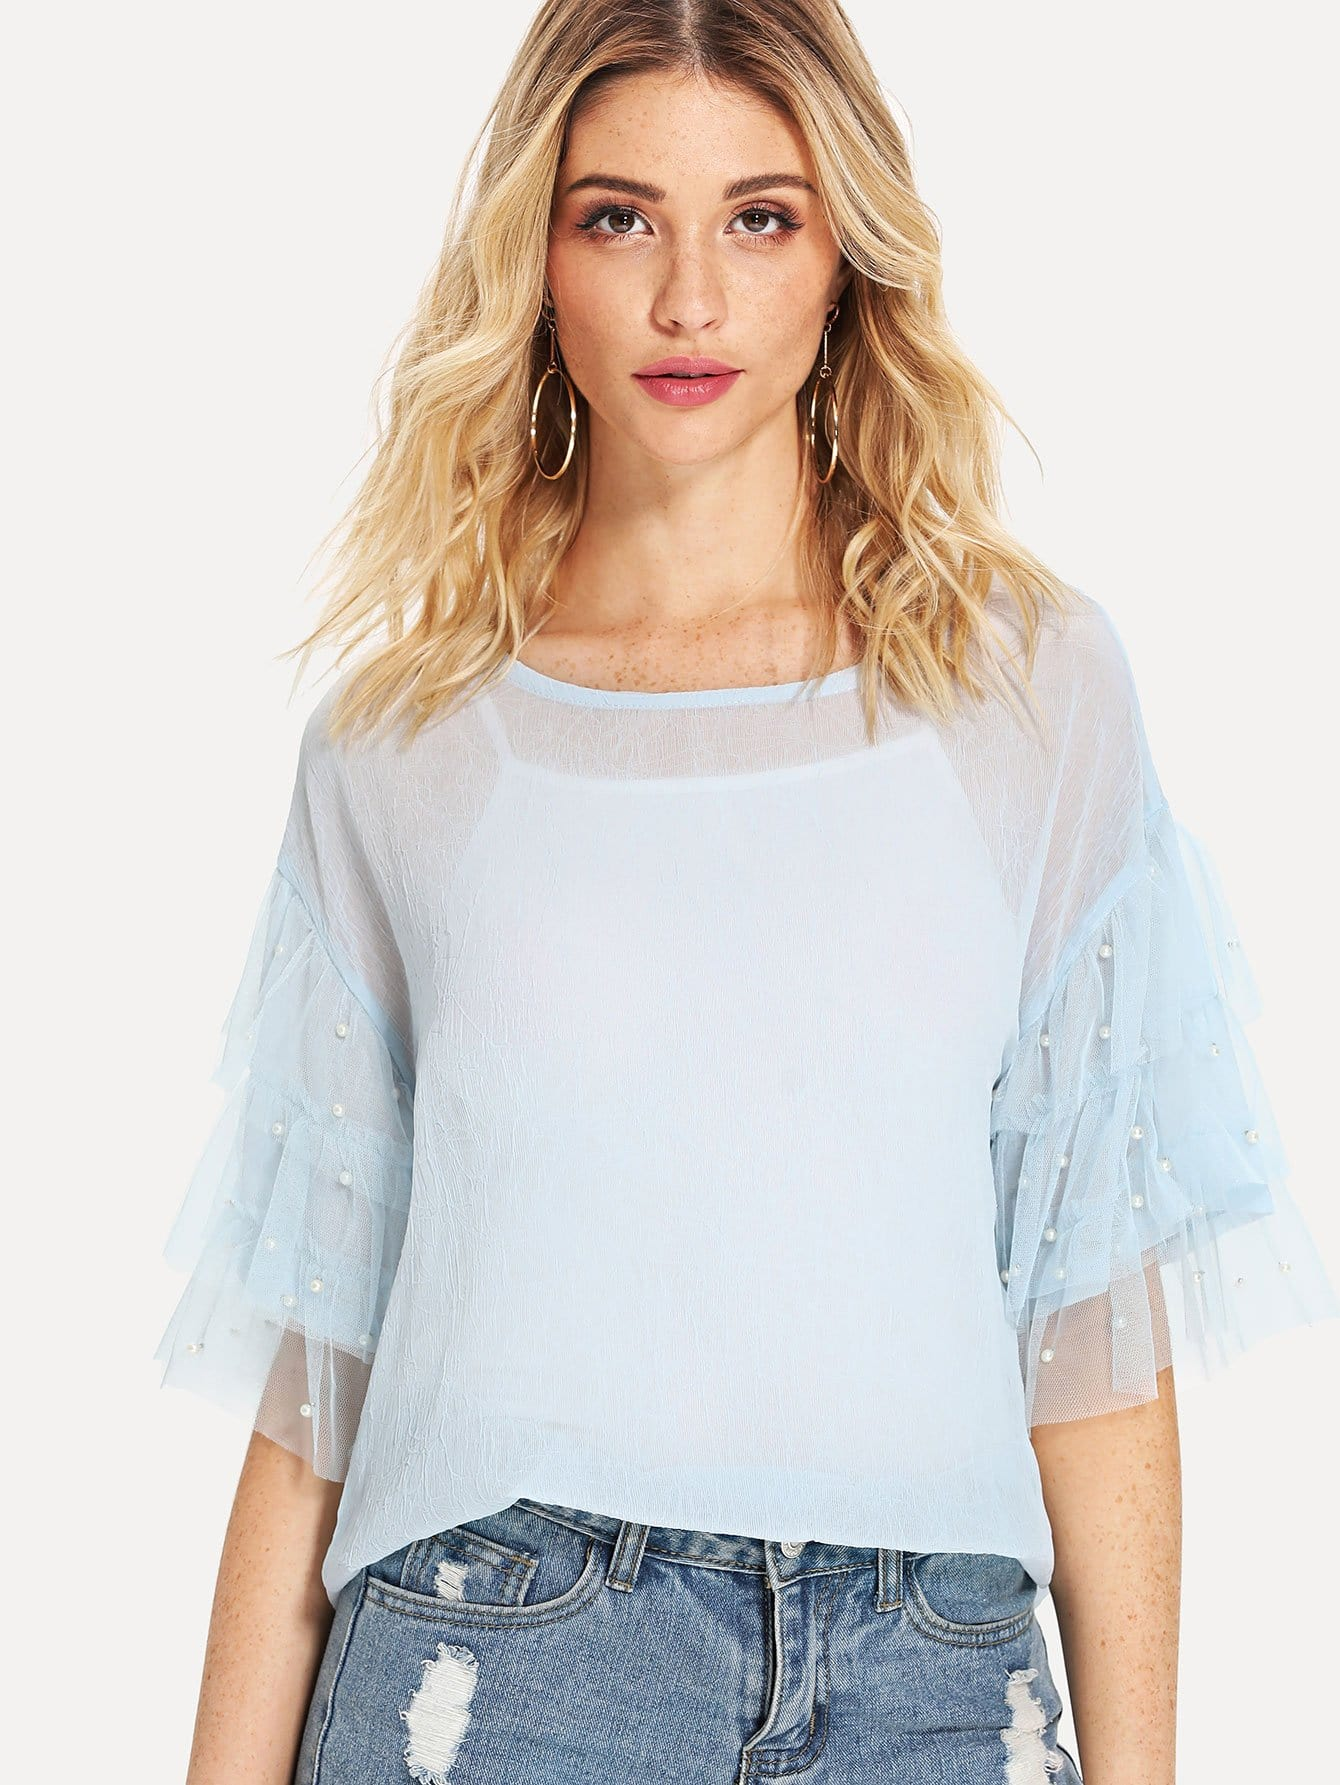 Flounce Sleeve Faux Pearl Beading Top & Cami Top flounce sleeve faux pearl beading lace top